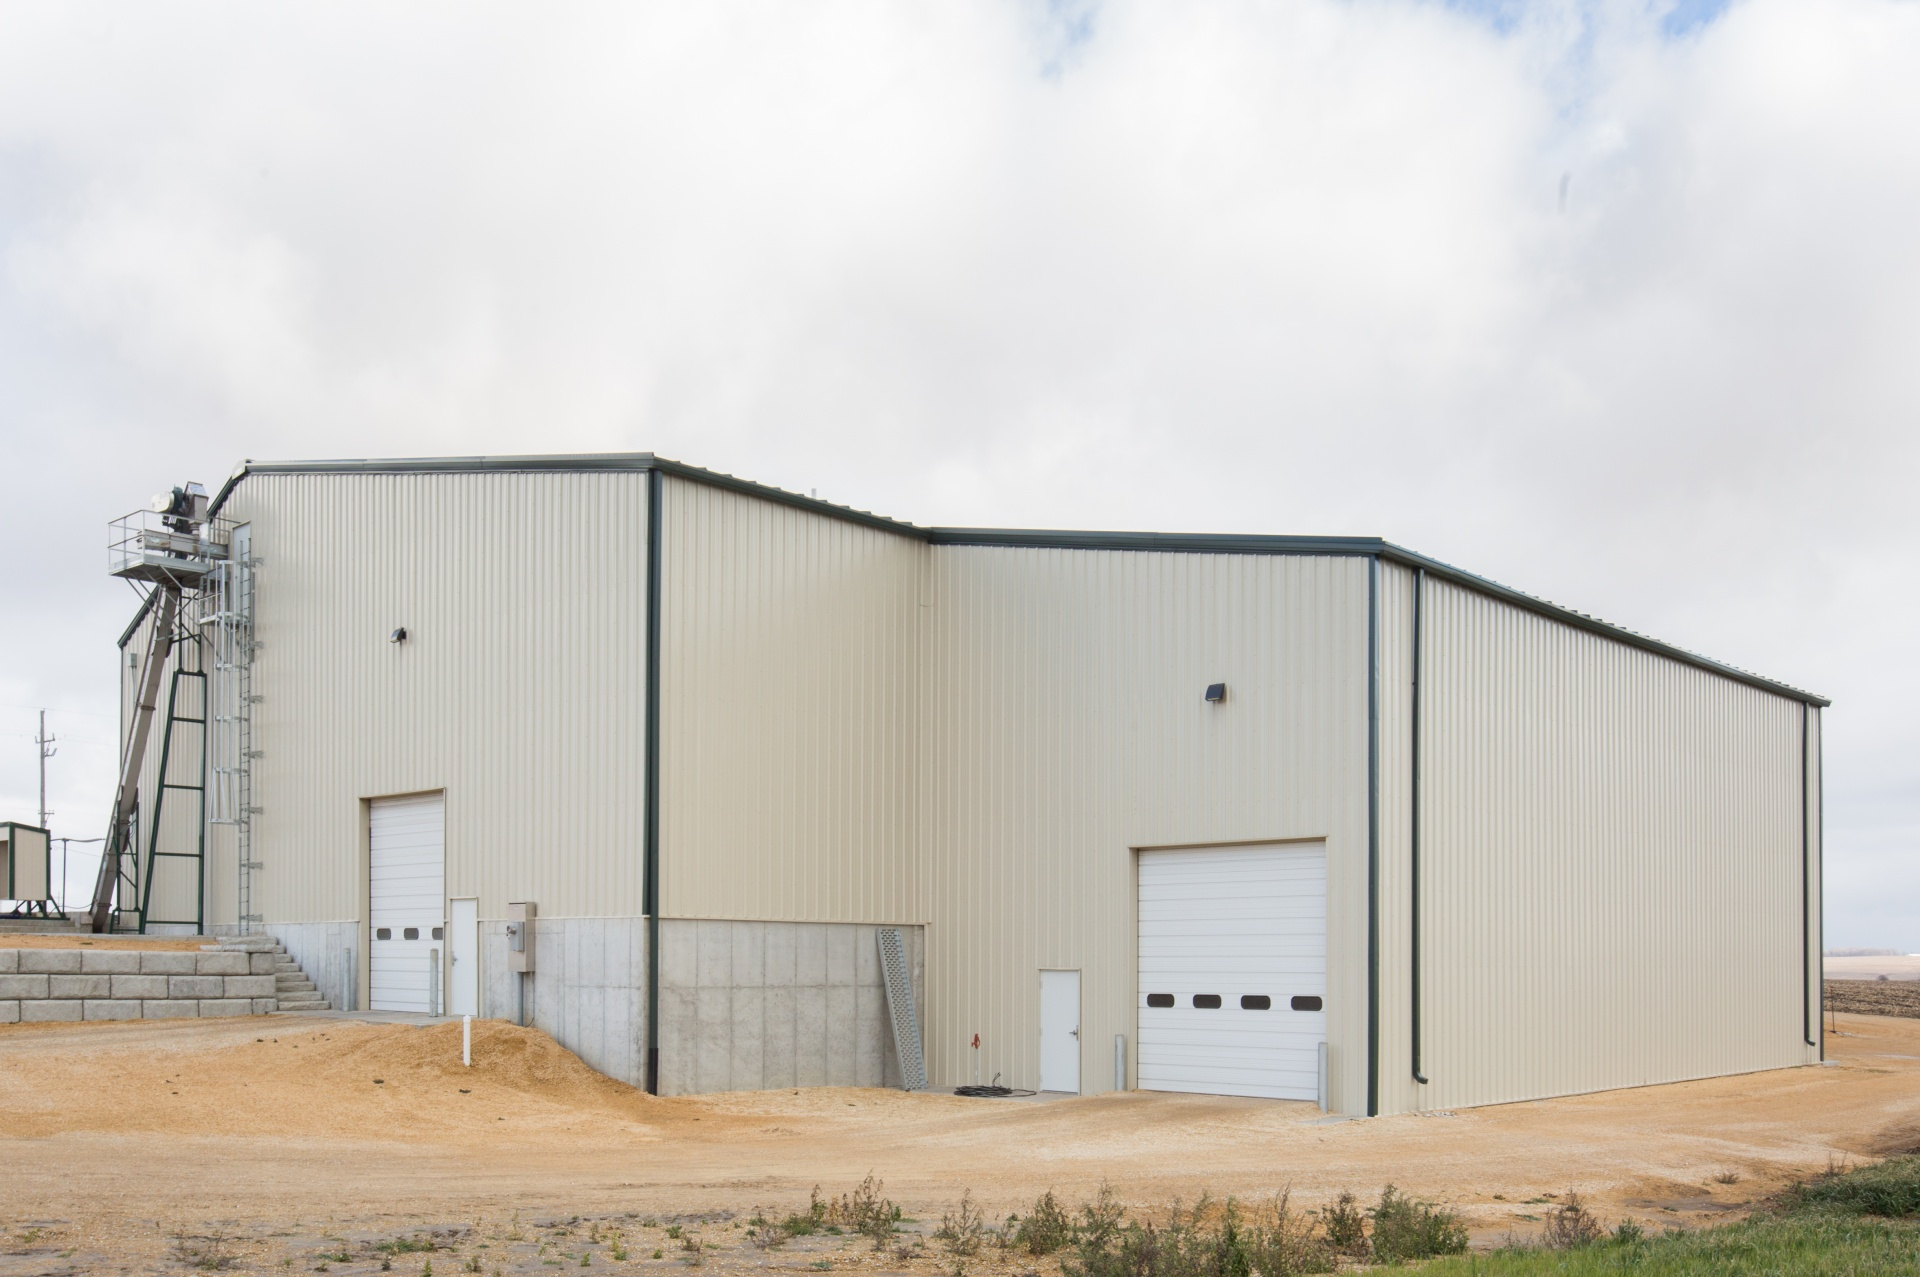 industrial building constructed with metal siding and trim and poured concrete floors